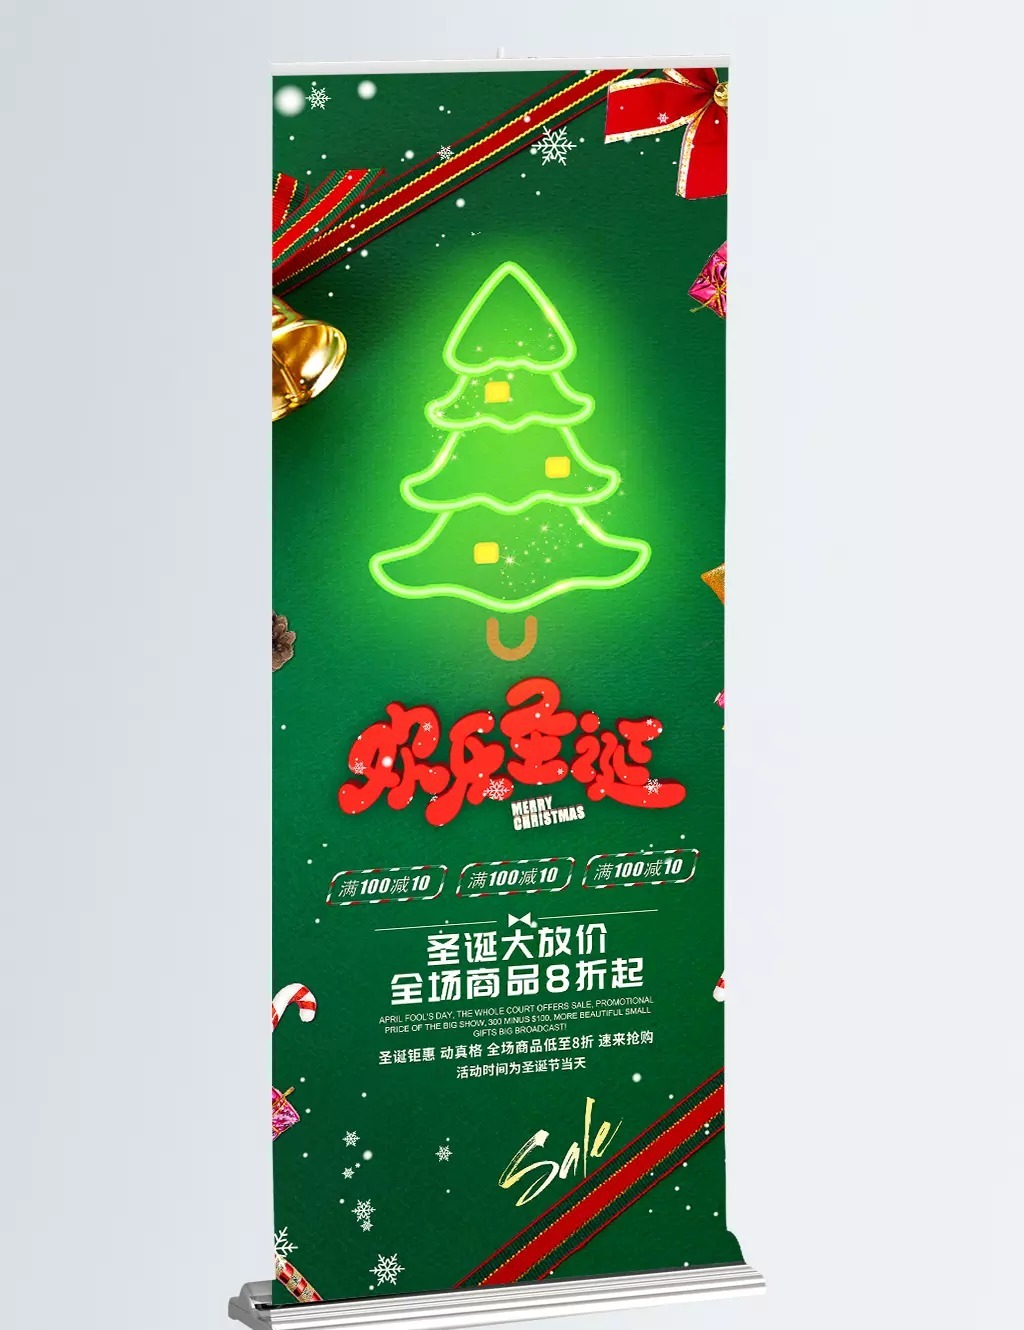 C4d Three Dimensional Christmas Display Rack Template for